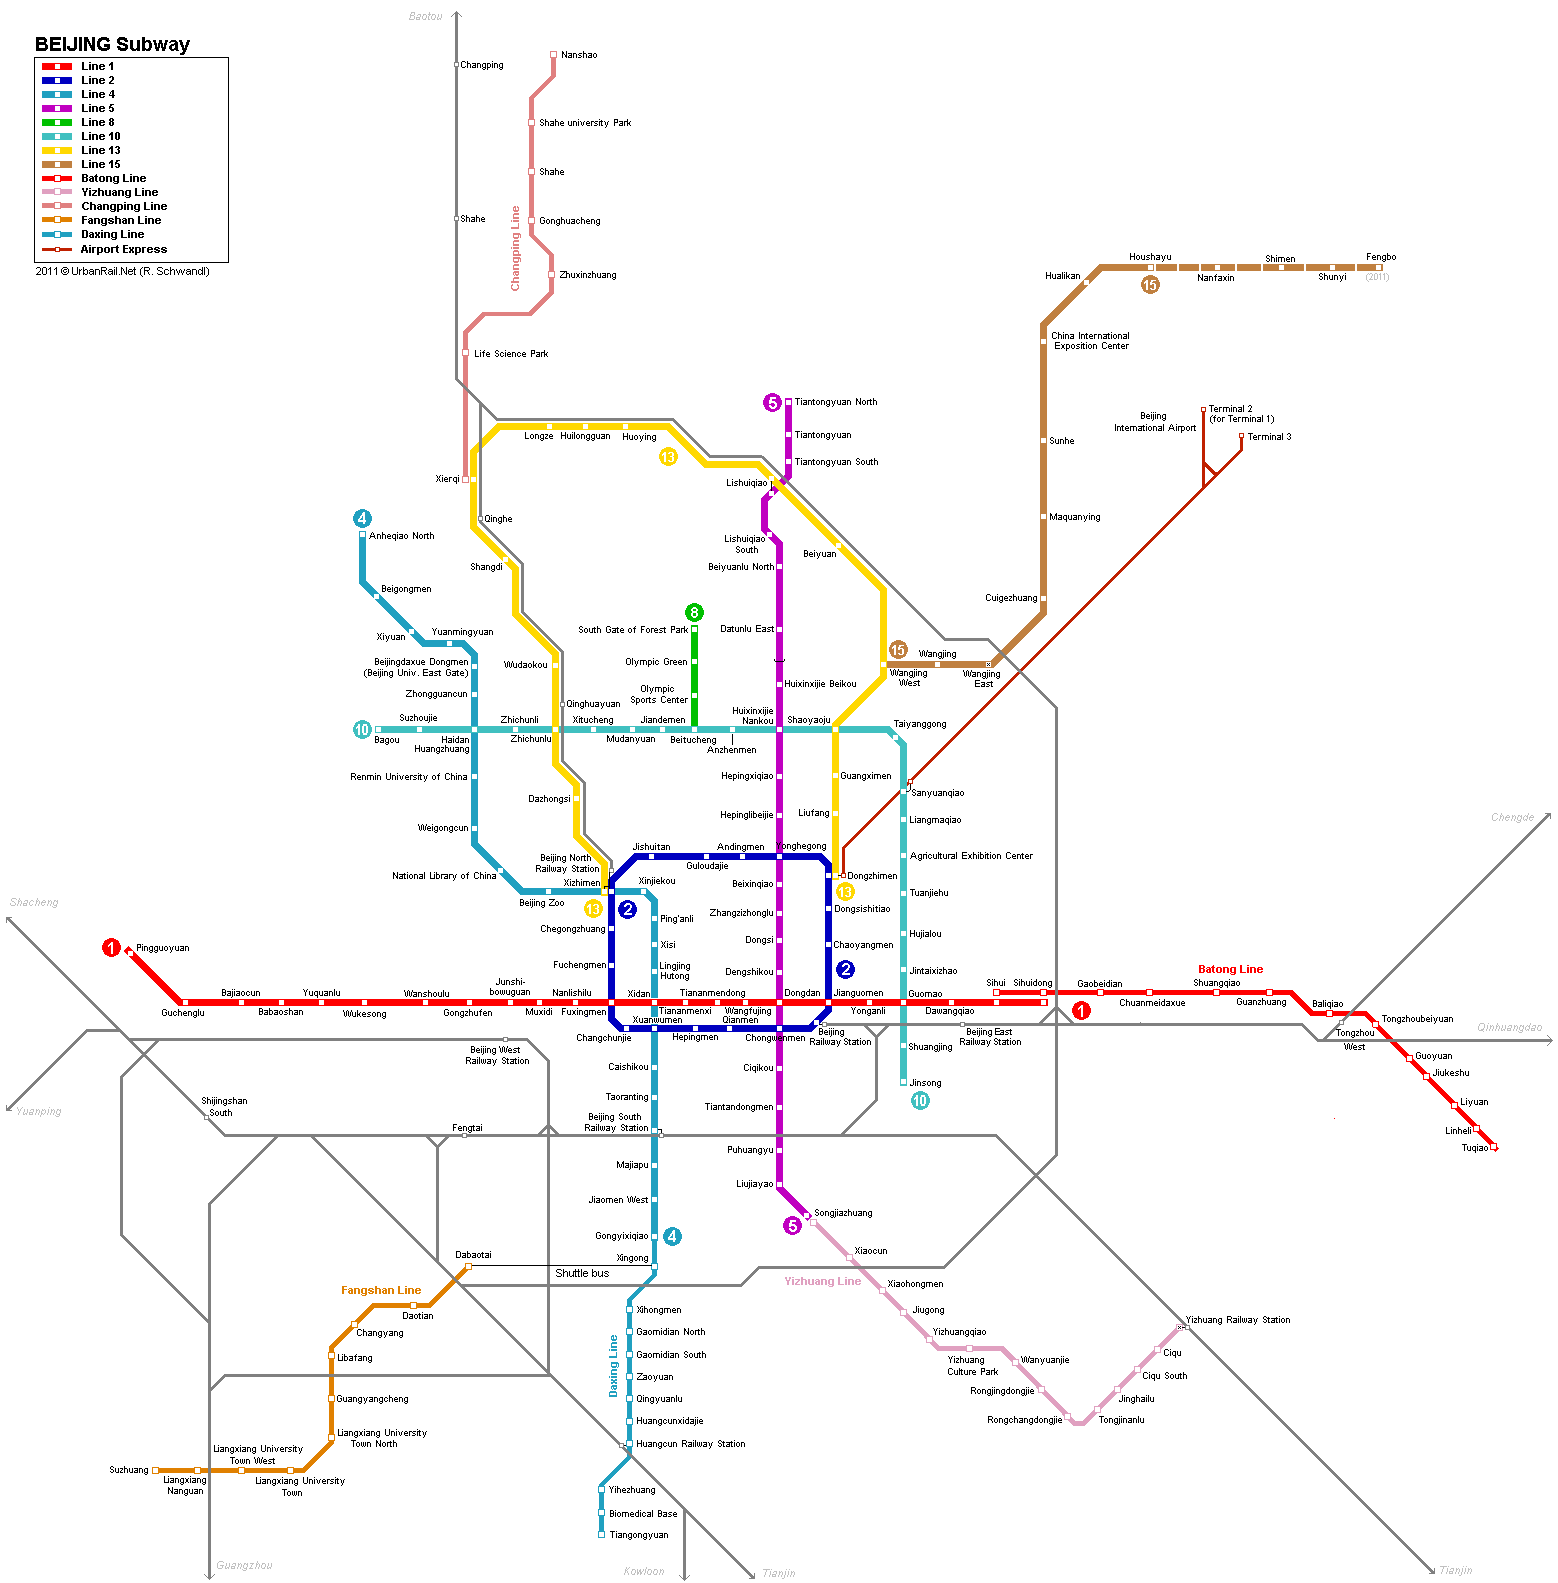 Beijing Subway Map 2017 Legend.Beijing Subway Map For Download Metro In Beijing High Resolution